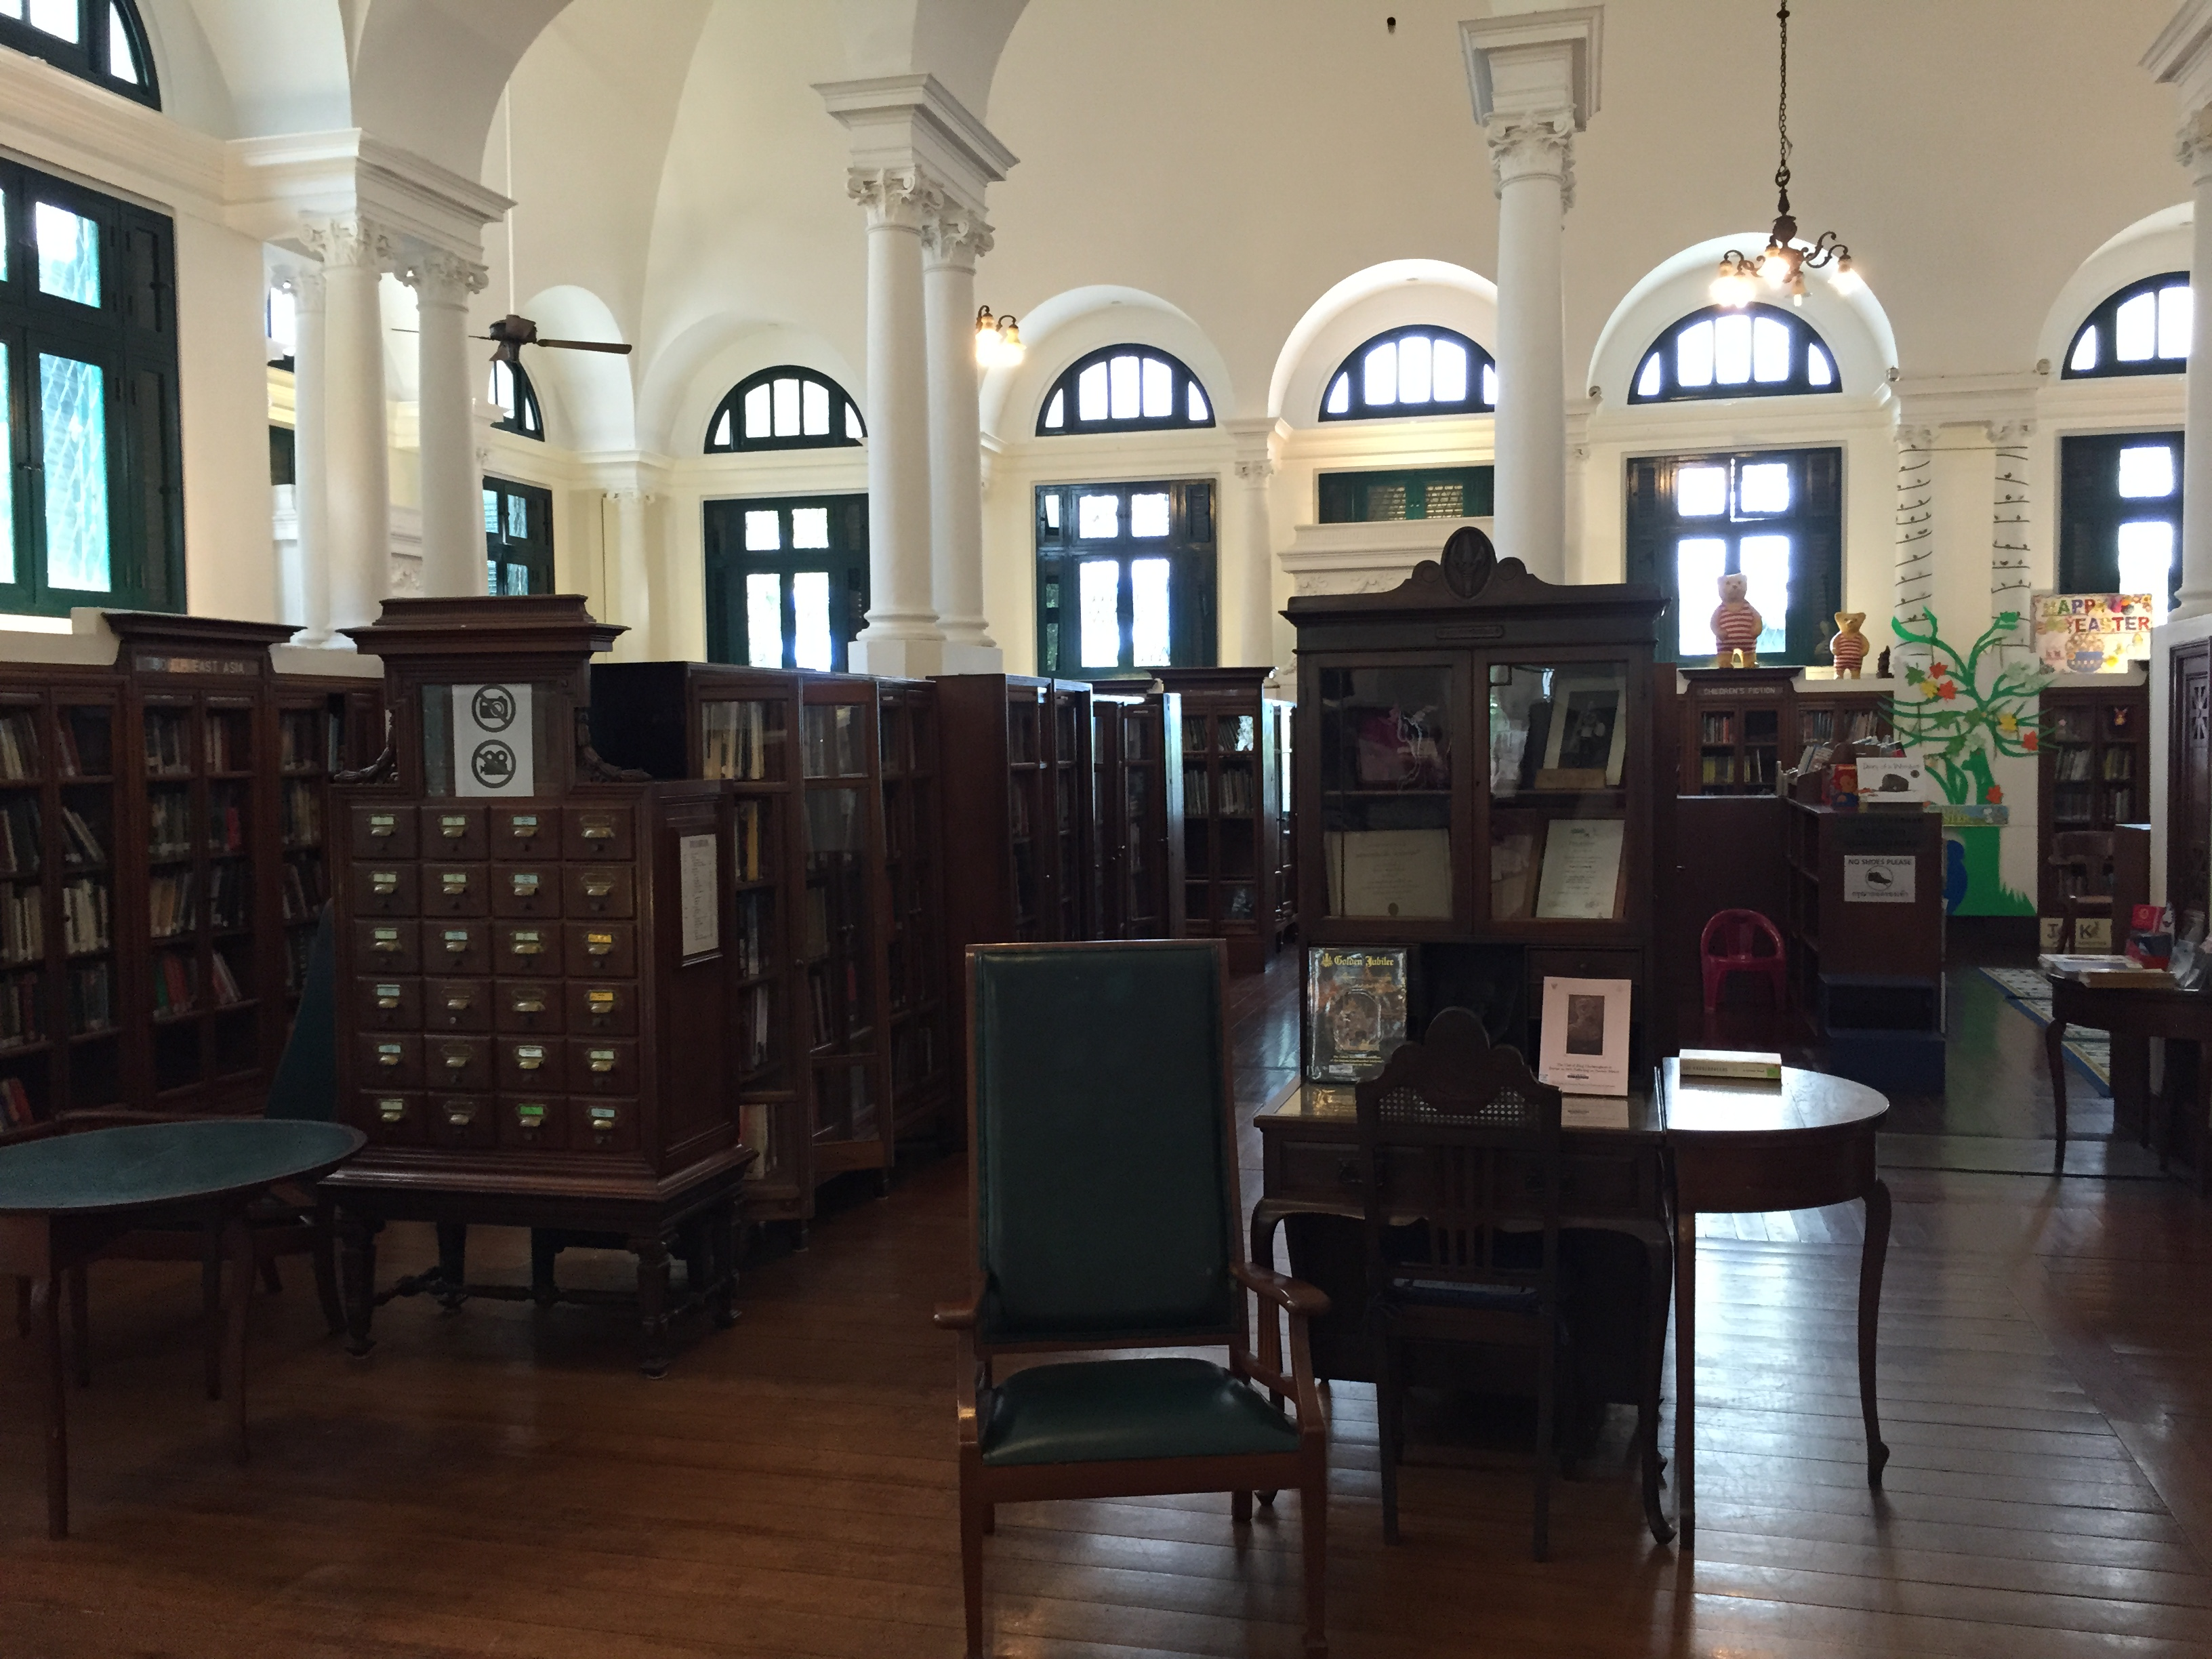 Neilson Hays Library Interior with card catalog (Photo Catherine Clover, 2015)